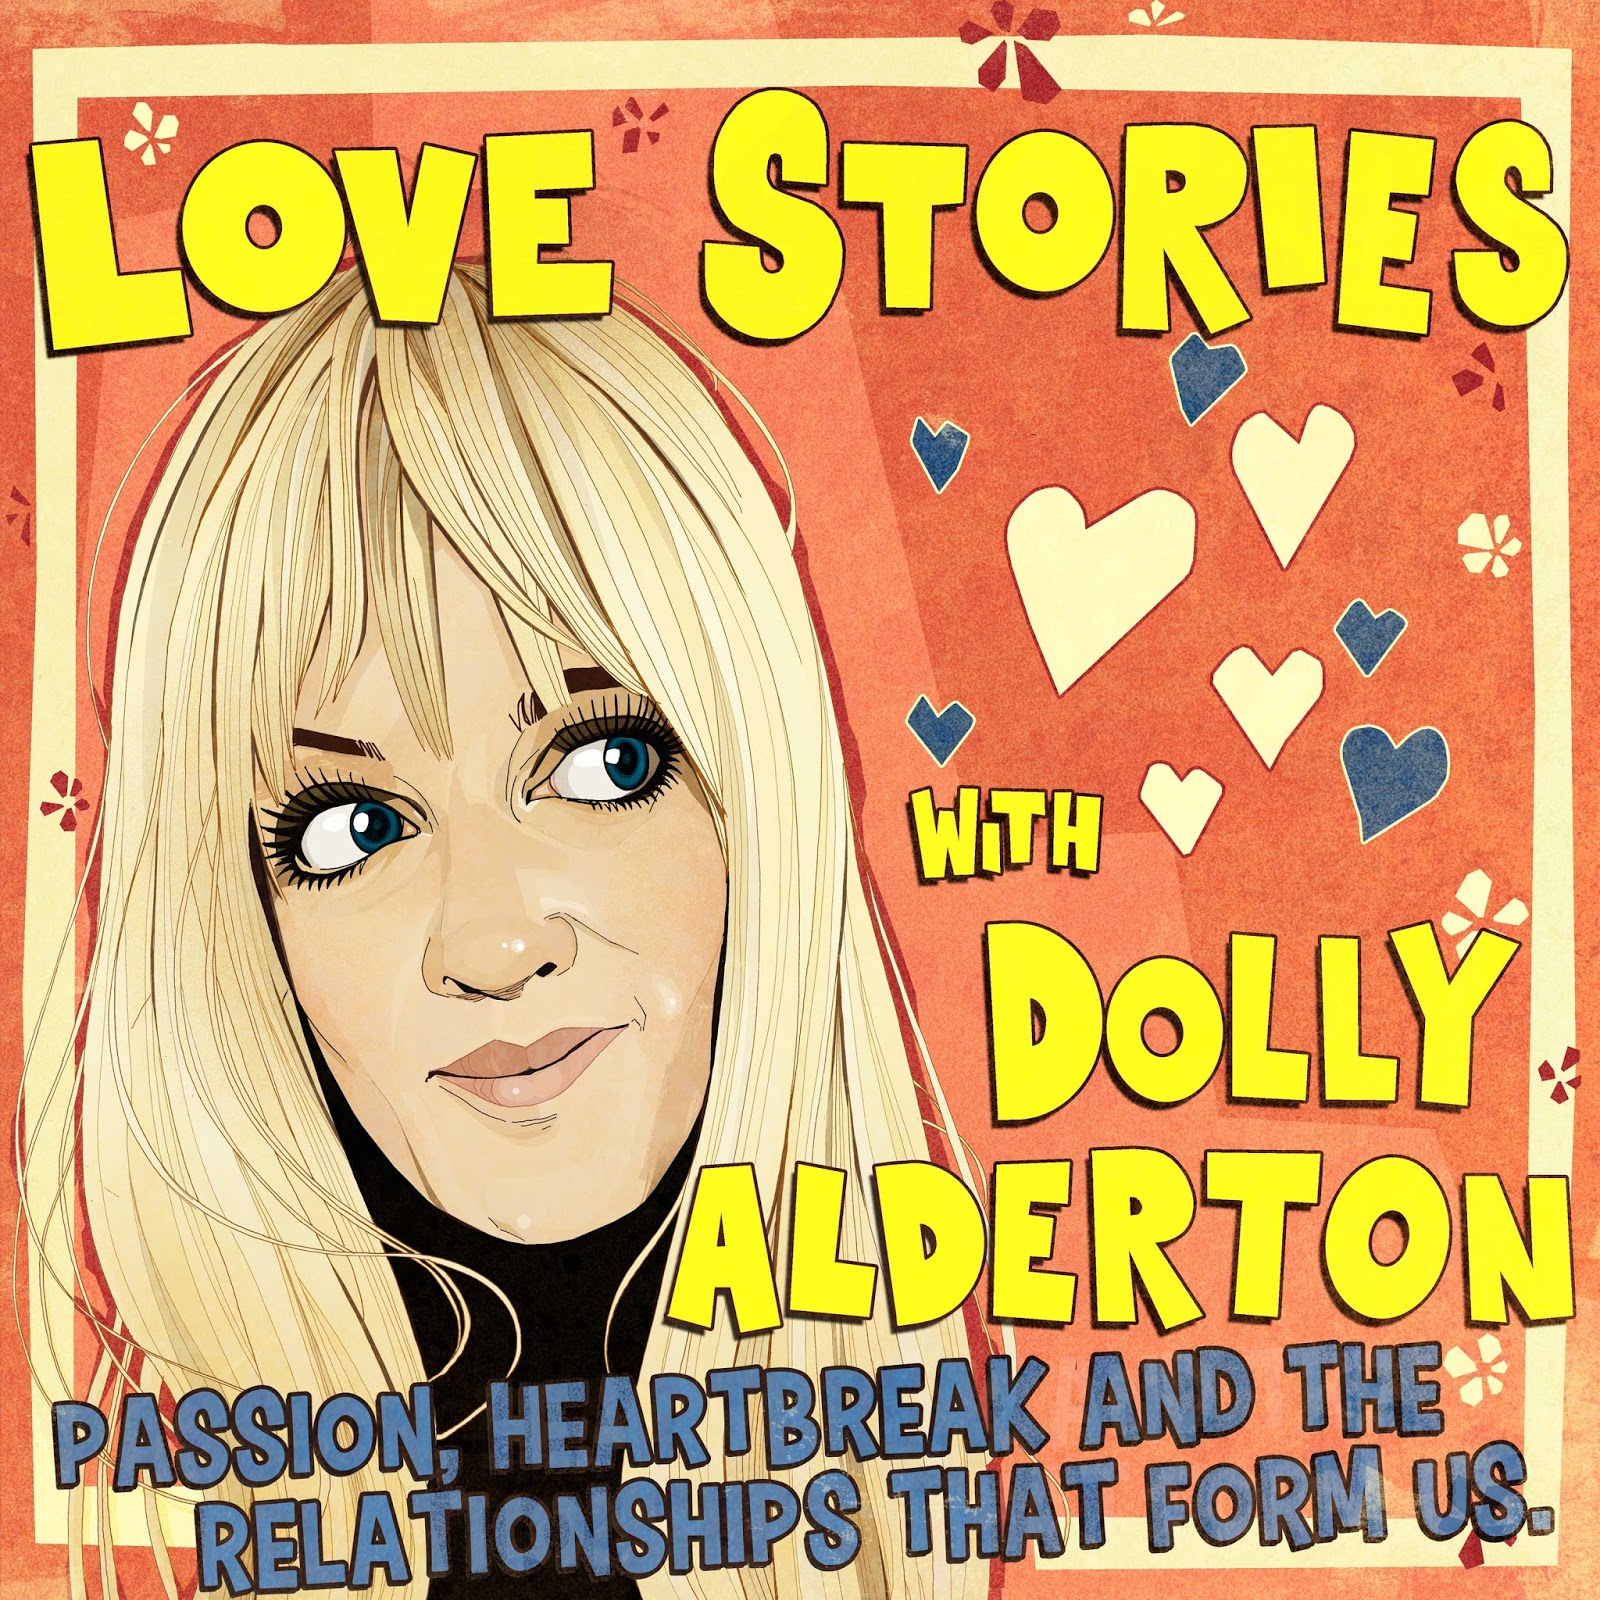 Love Stories podcast logo